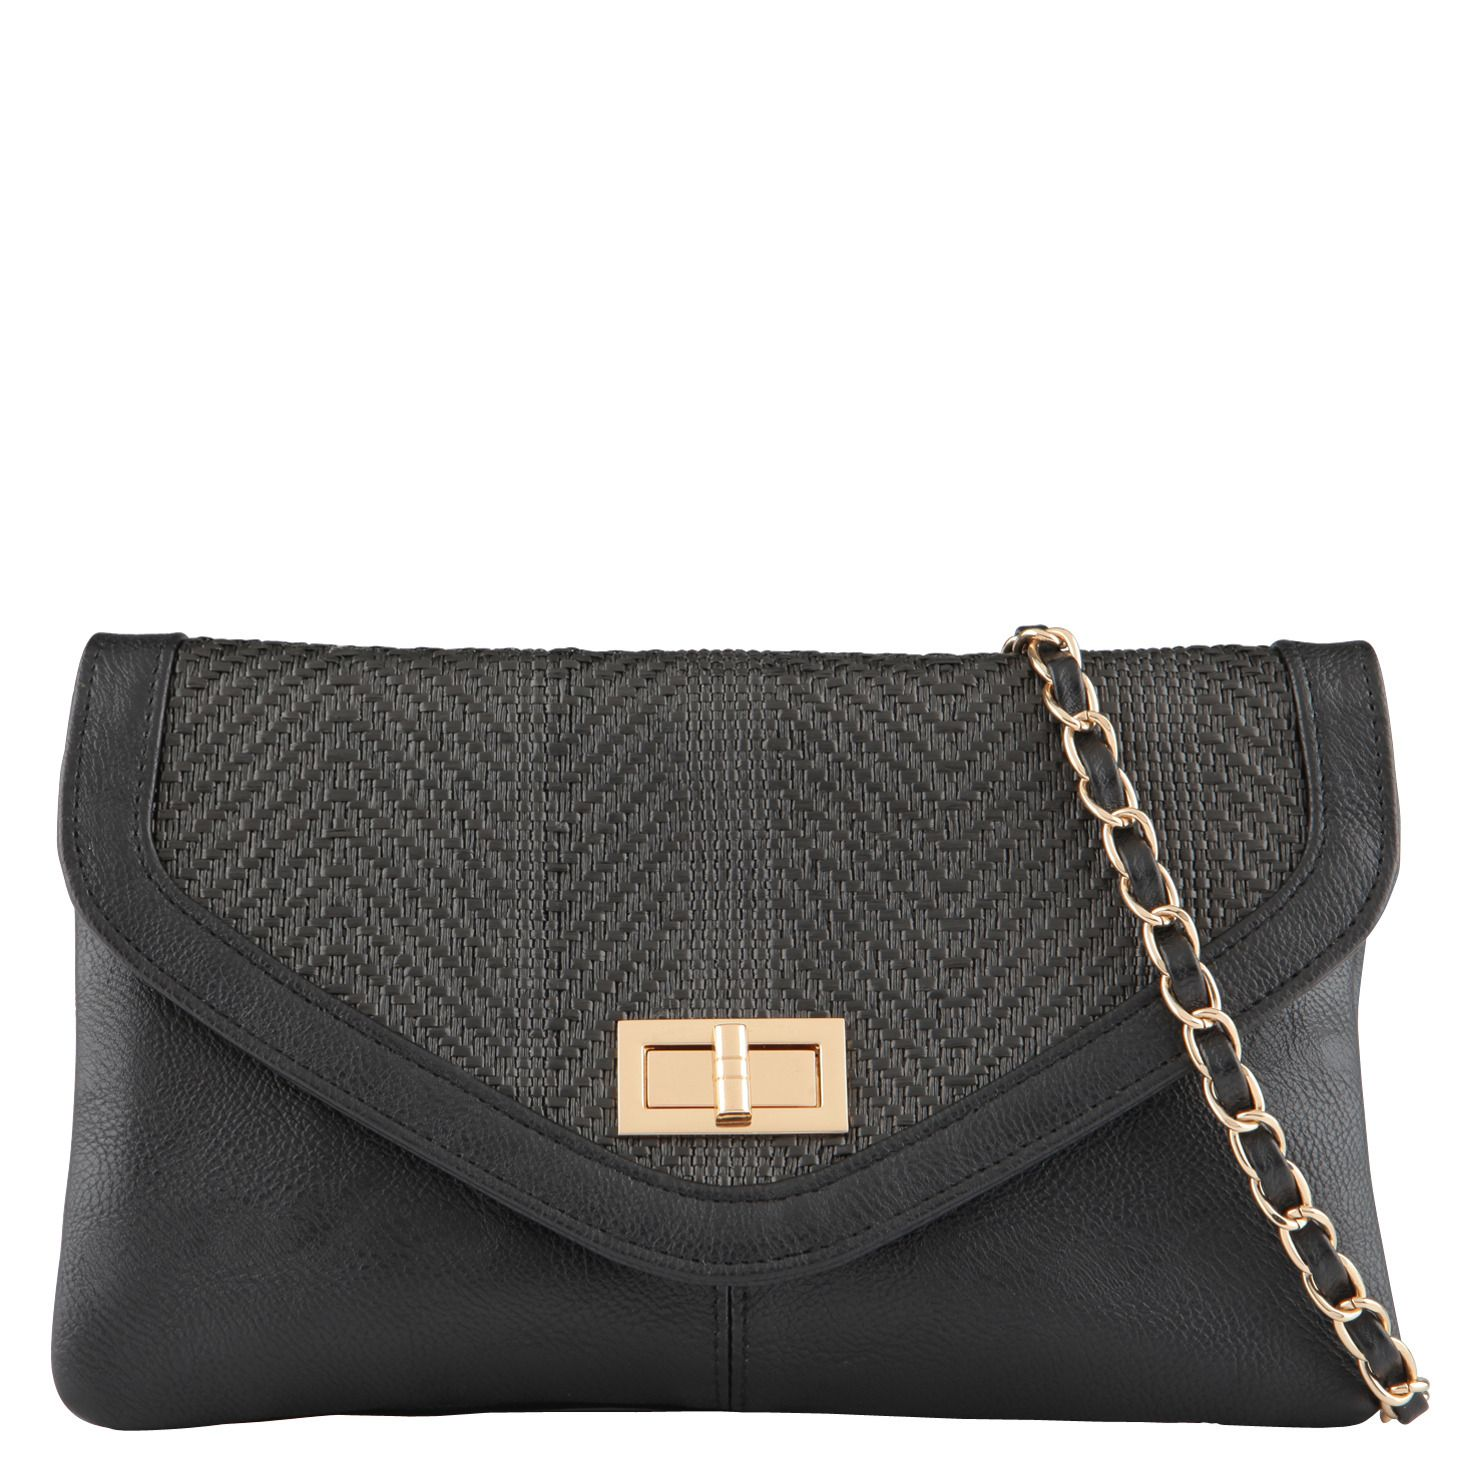 BEASON - handbags's clutches & evening bags for sale at ALDO Shoes ...